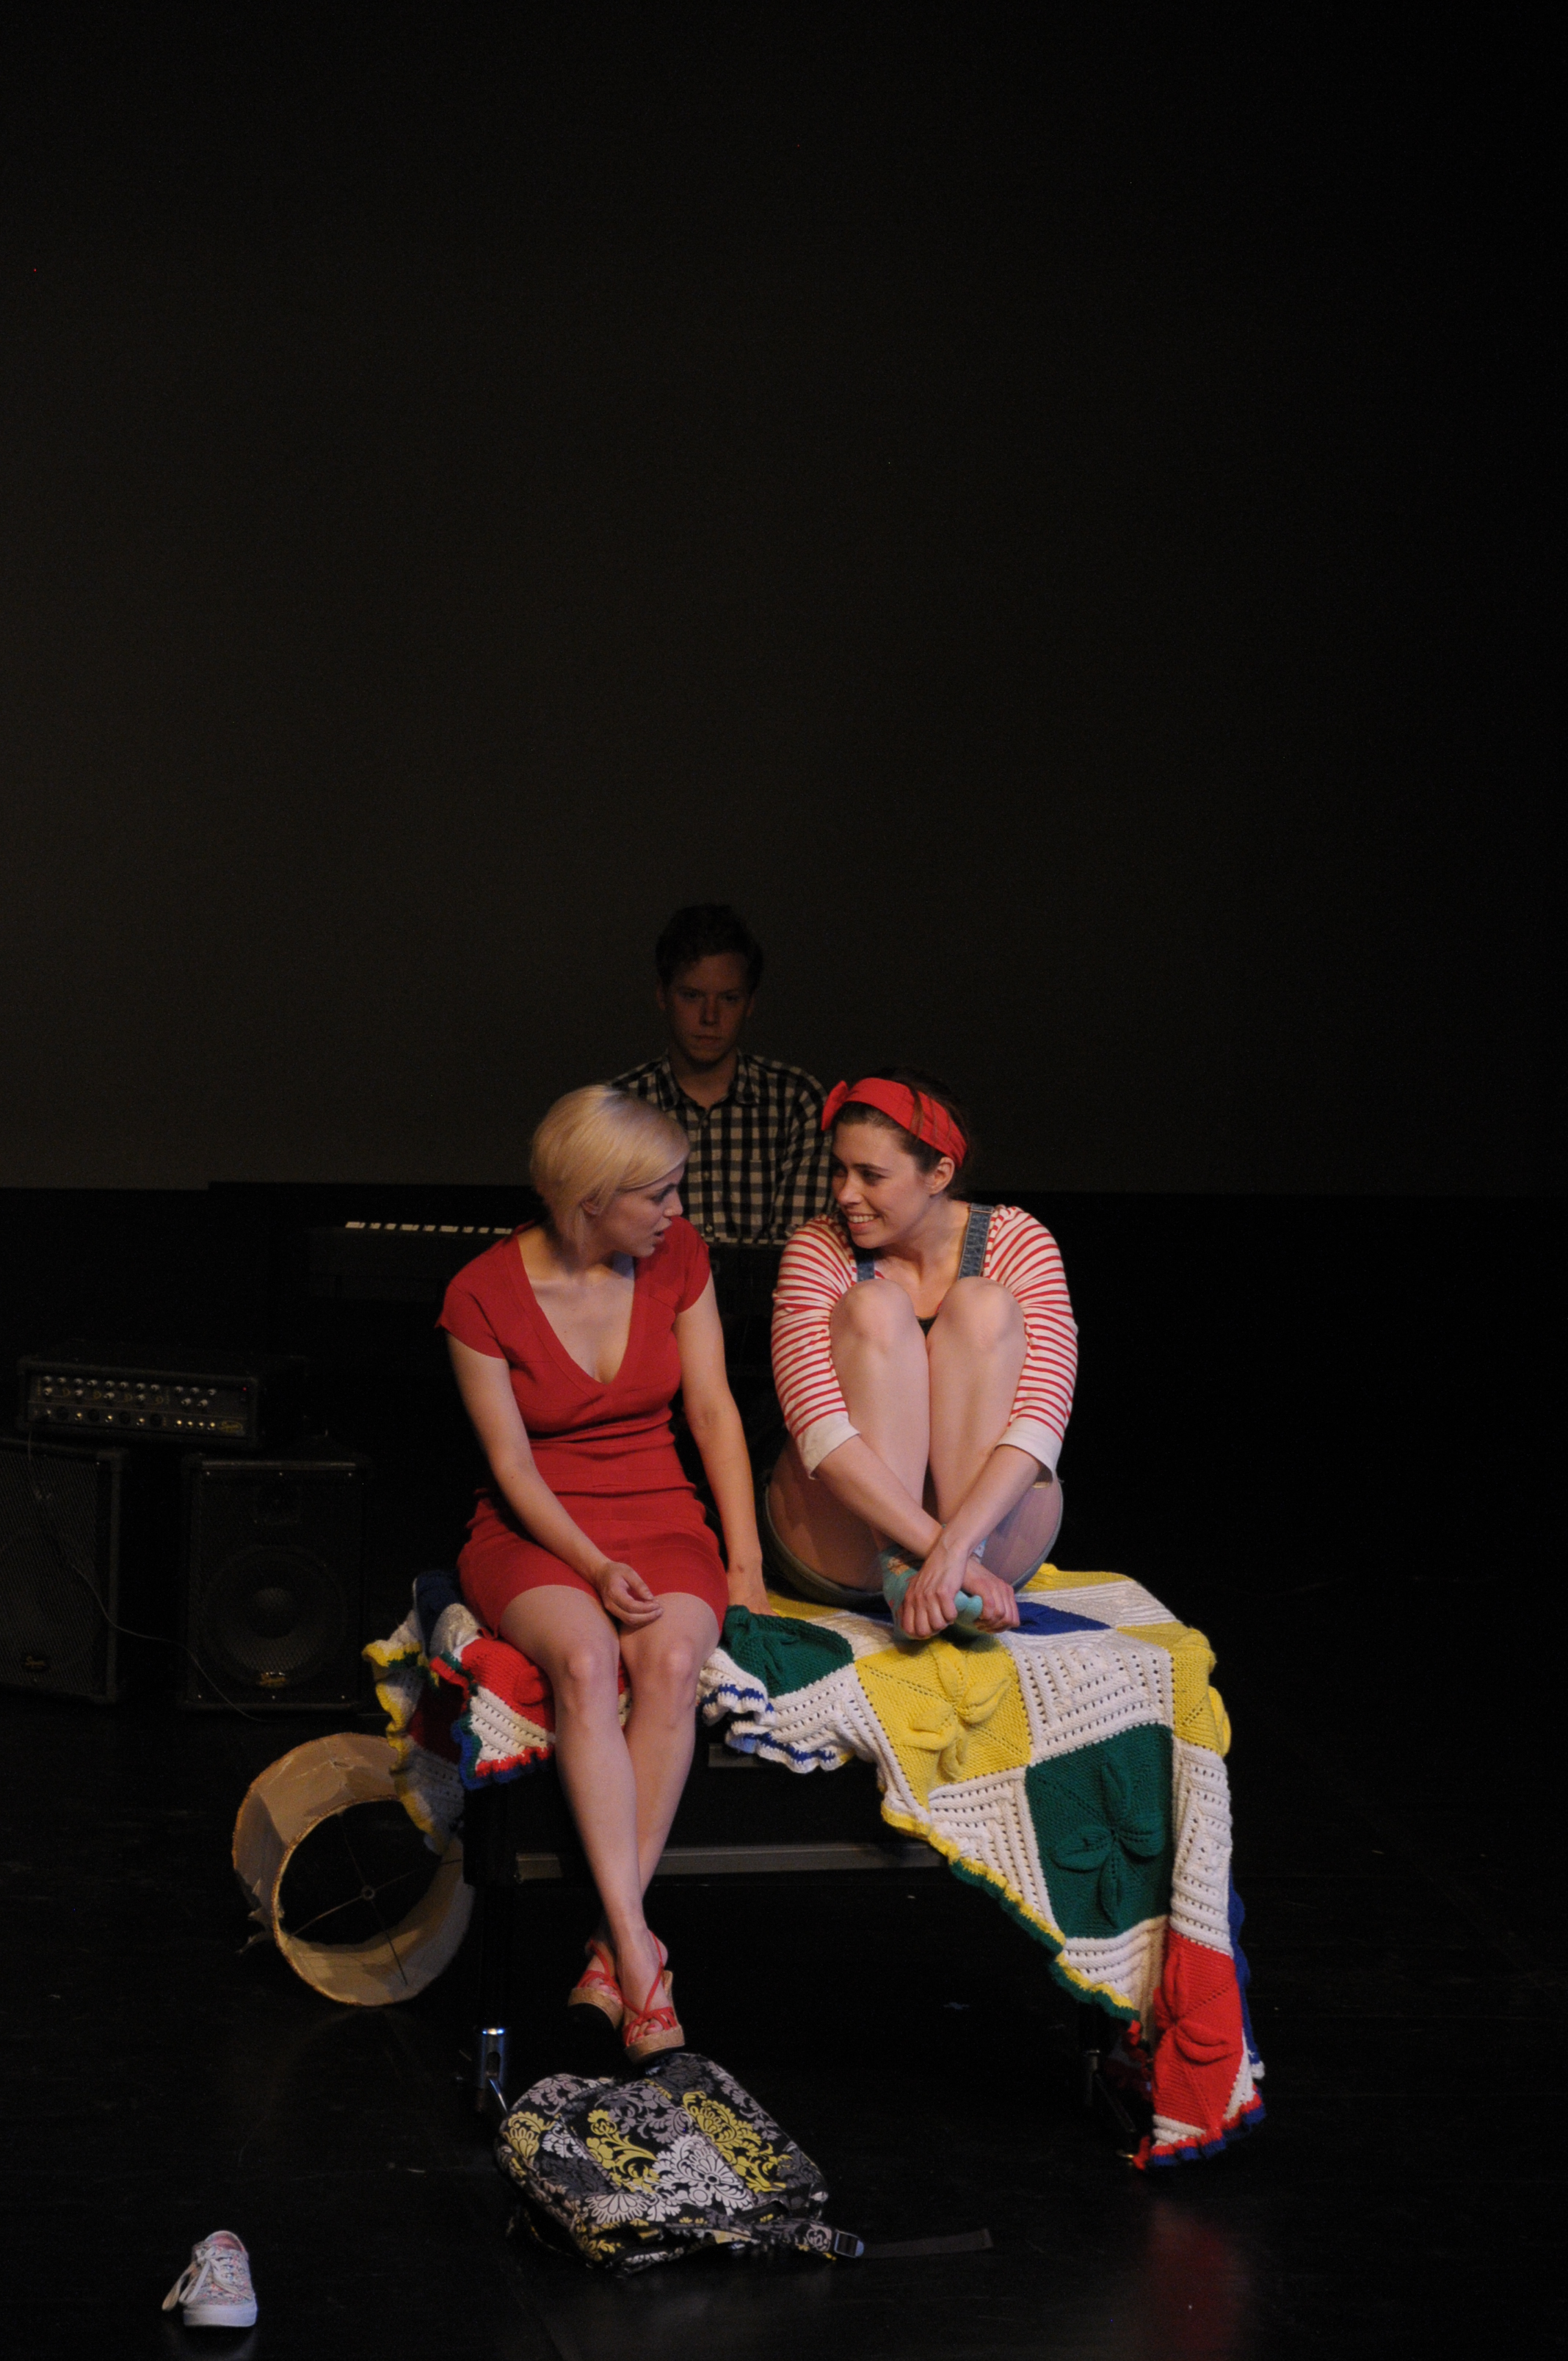 Tess Higgins and Brittany Martz in  Dark Times at Grimesville High, 2016 Capital Fringe Festival